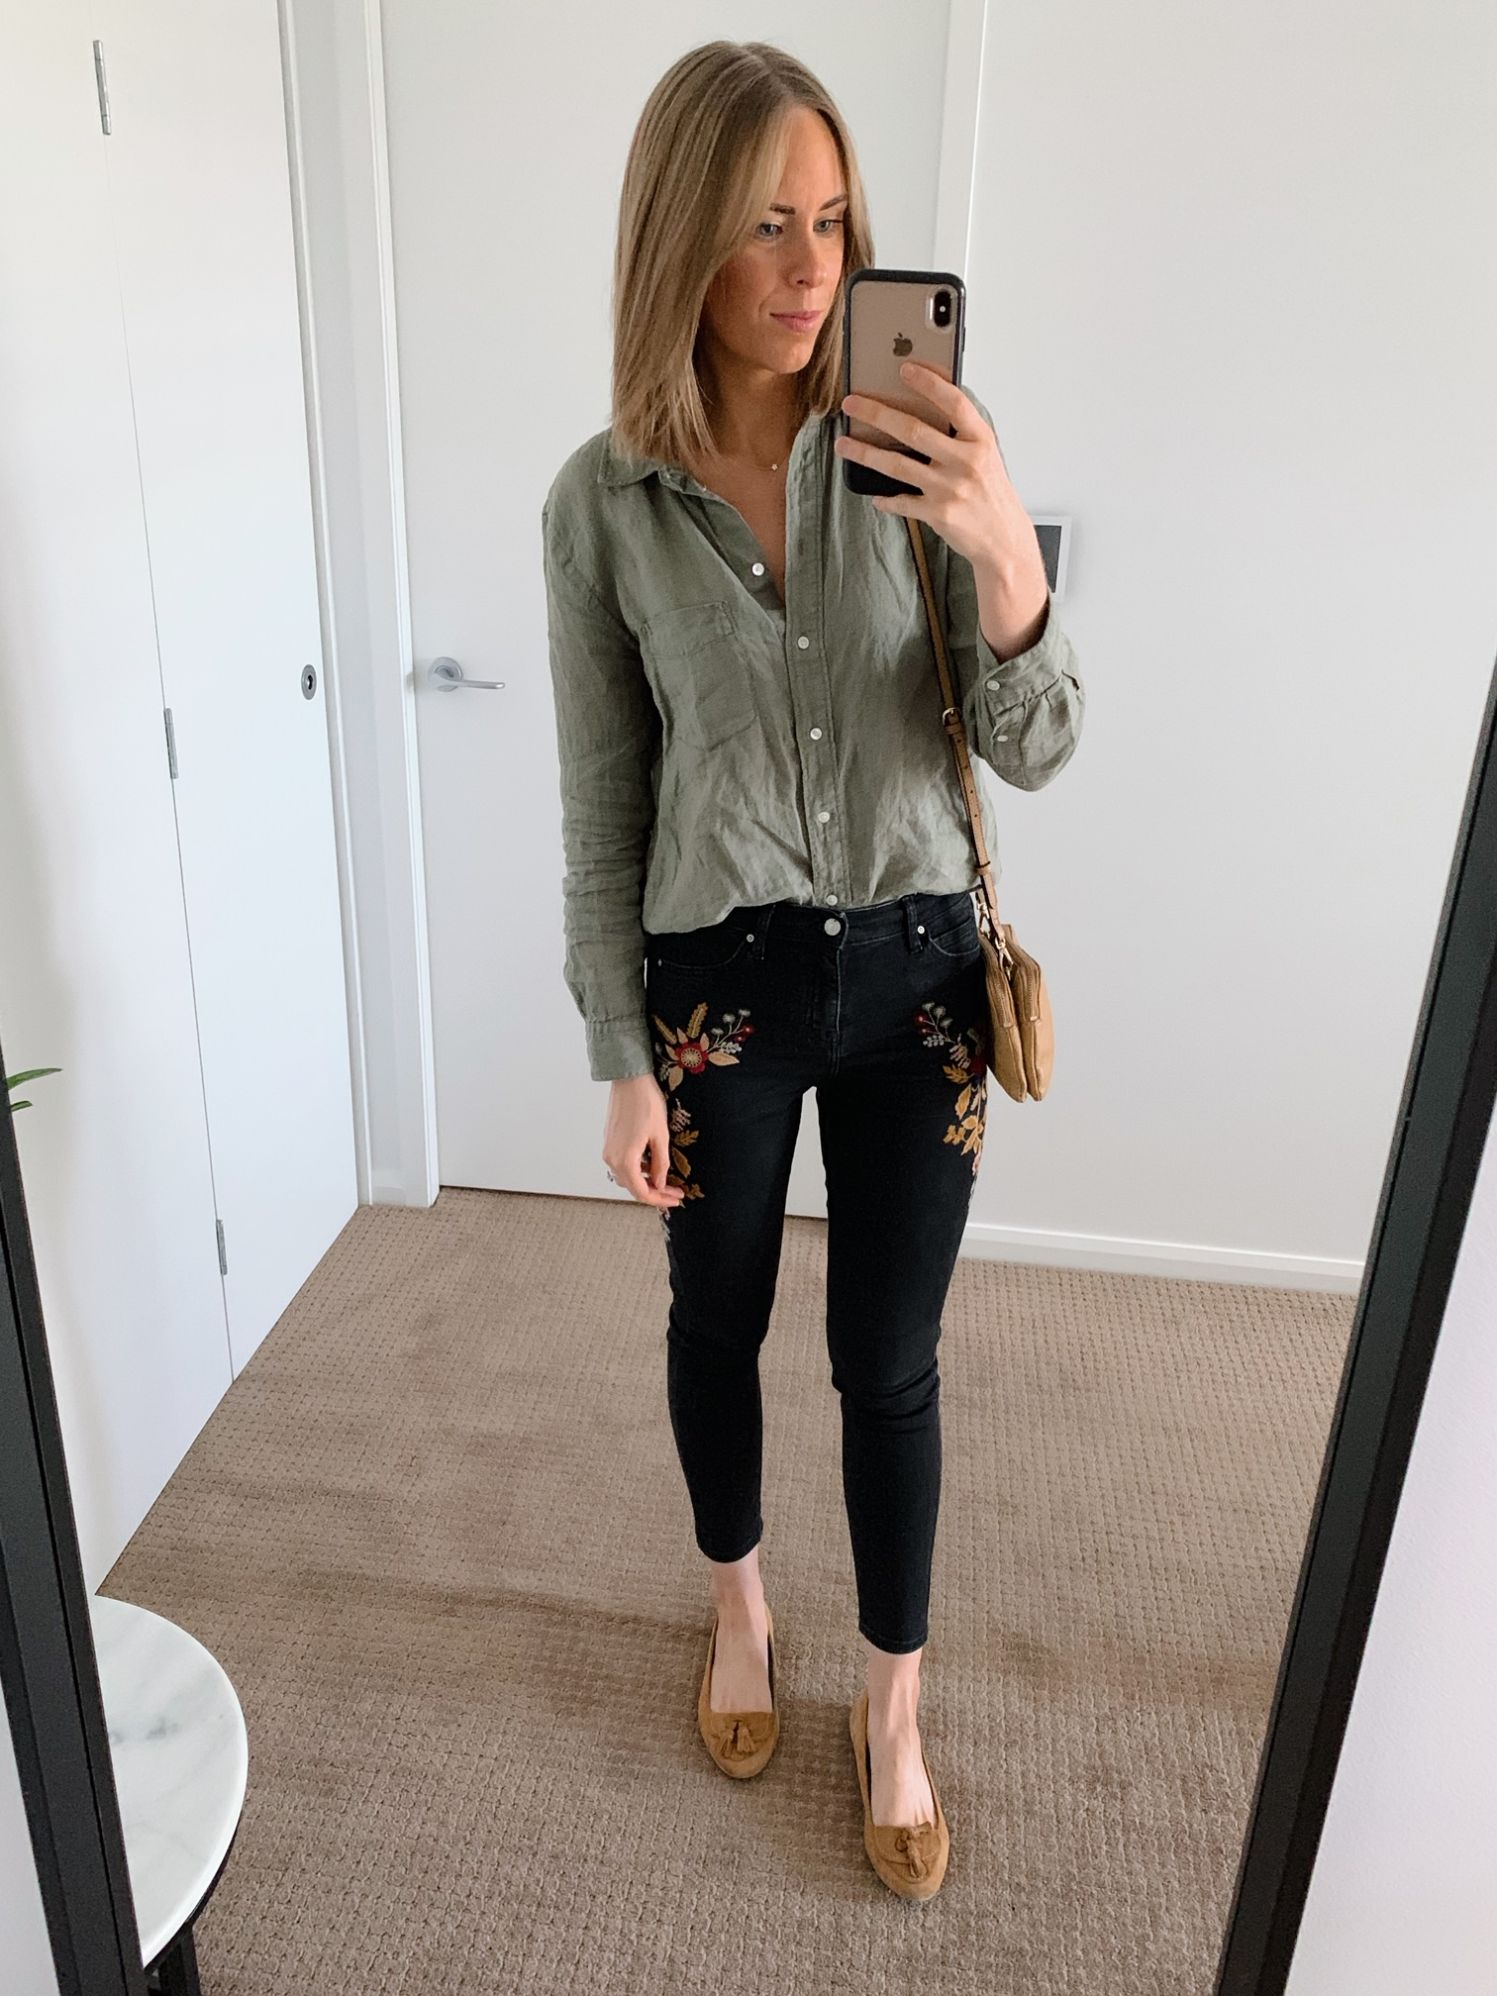 olive green linen shirt and embroidered topshop jeans fashion blogger outfit ideas pinterest style lauren slade top usa blog 1